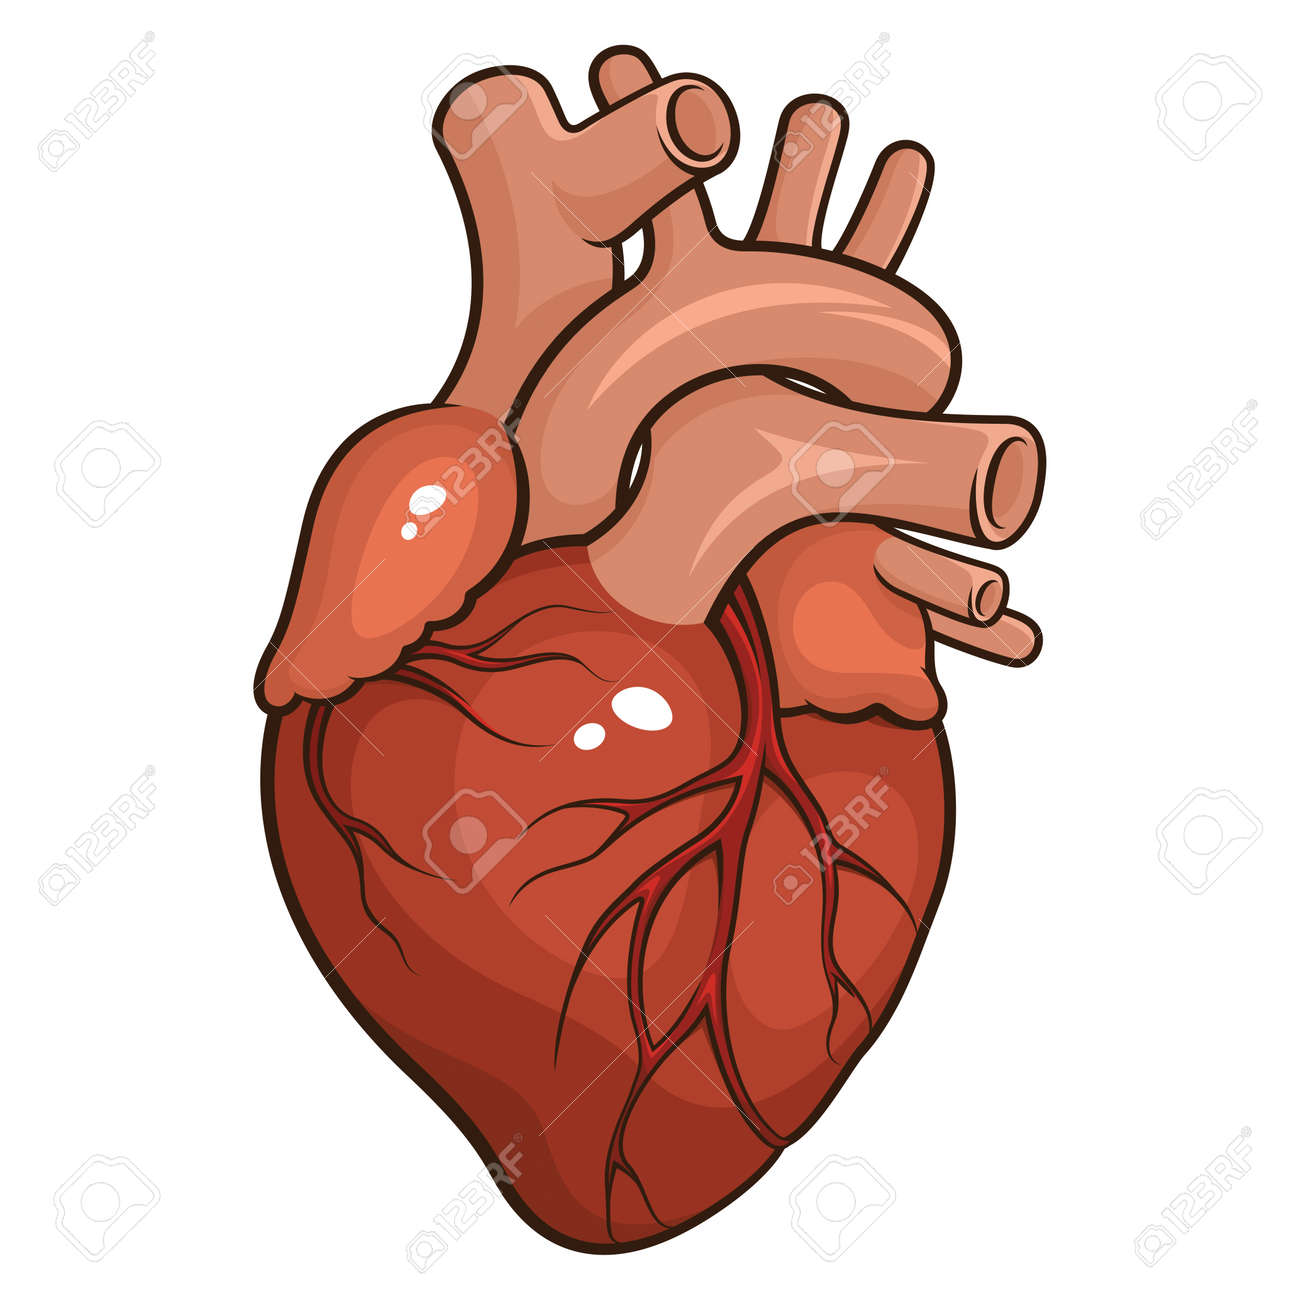 Vector Illustration Of A Human Heart Isolated On A White Background ...